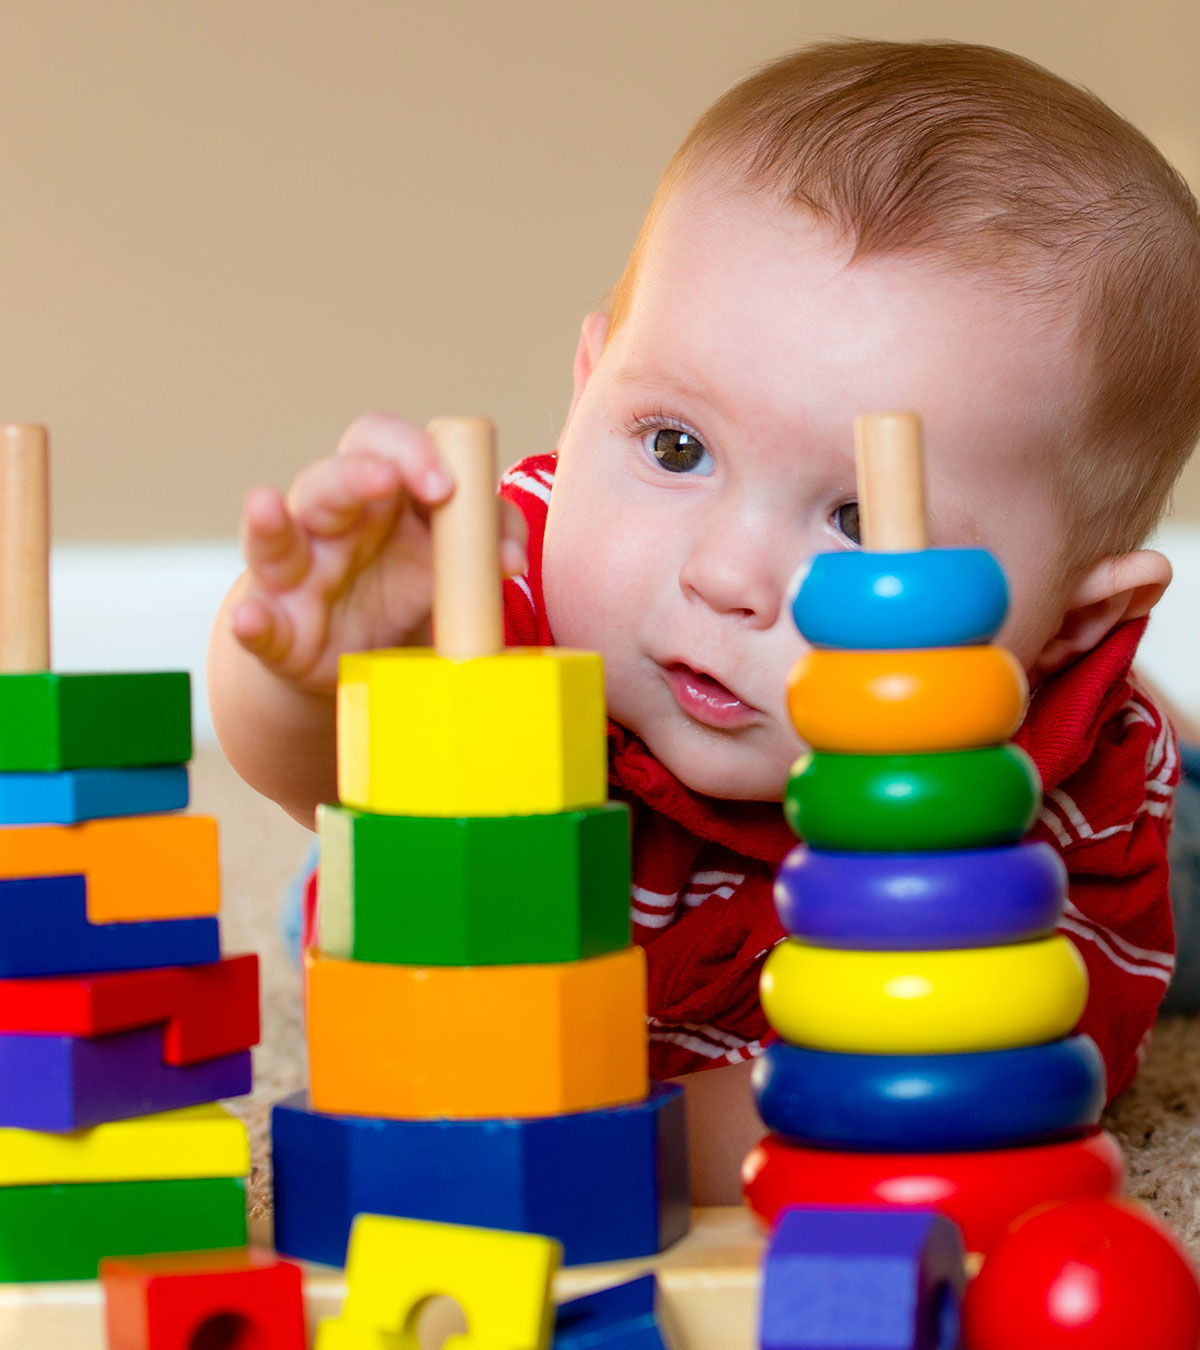 11 Ways To Make Your Baby Smart And Intelligent